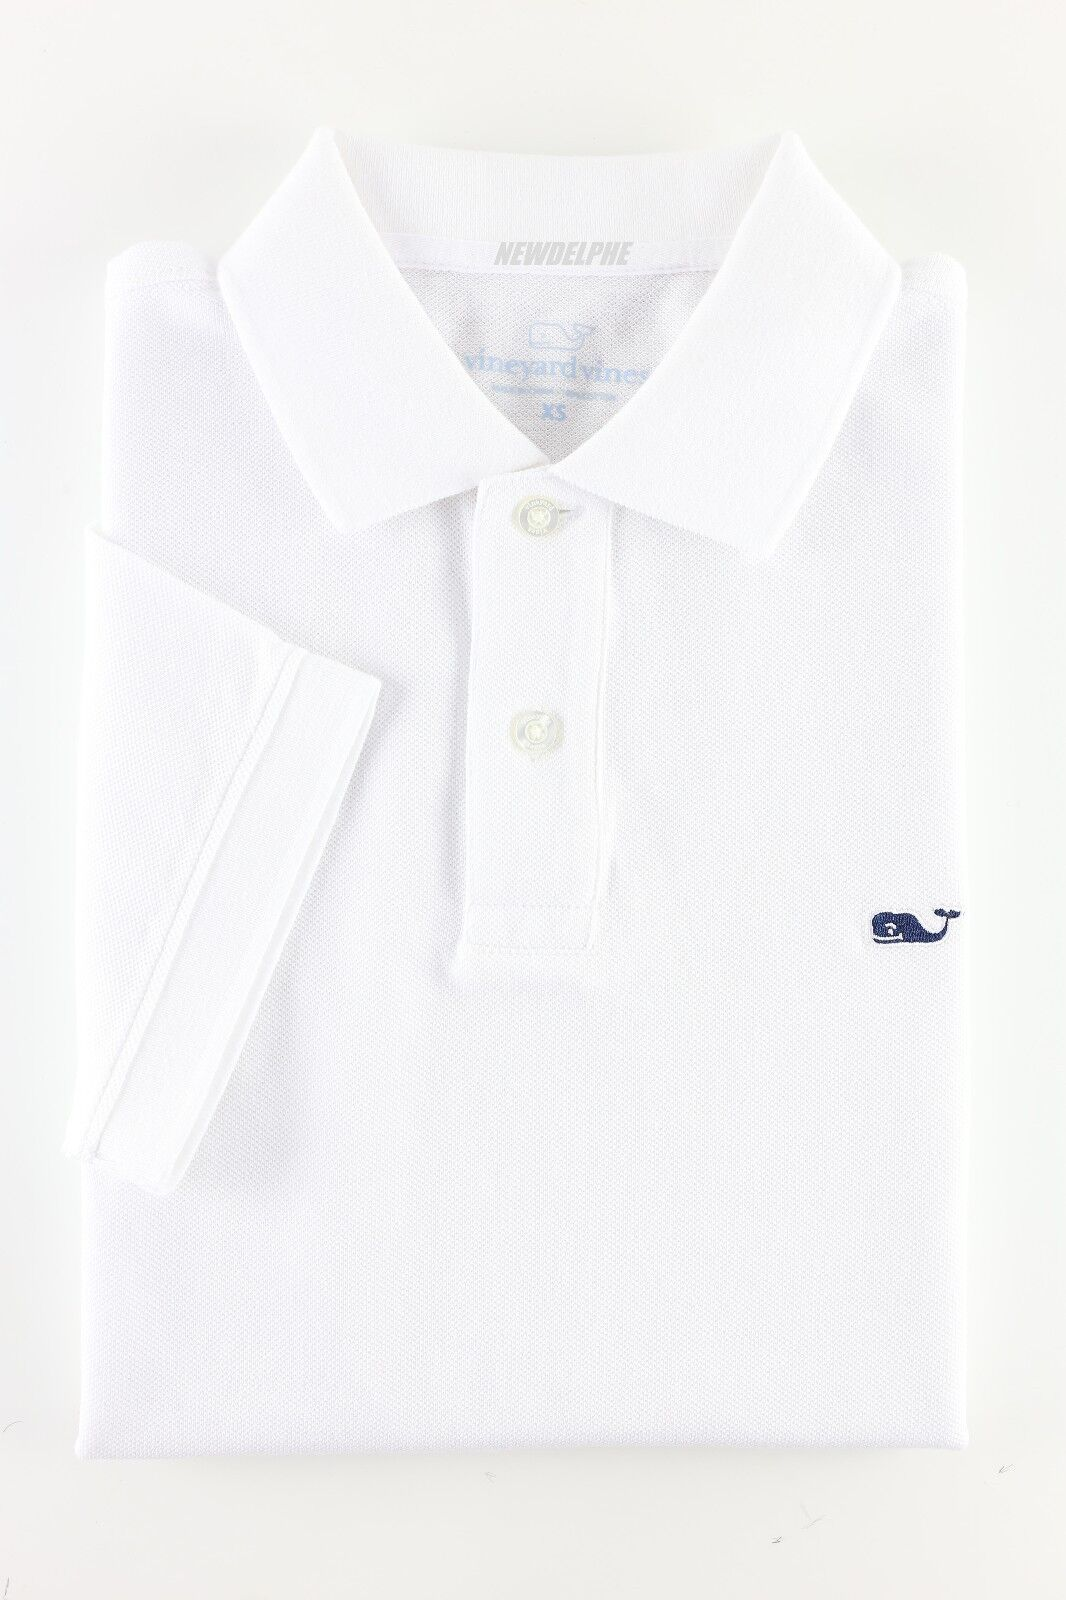 5a42a9d4 Vineyard Vines Mens White Cap Solid Classic Polo Shirt S for sale online |  eBay